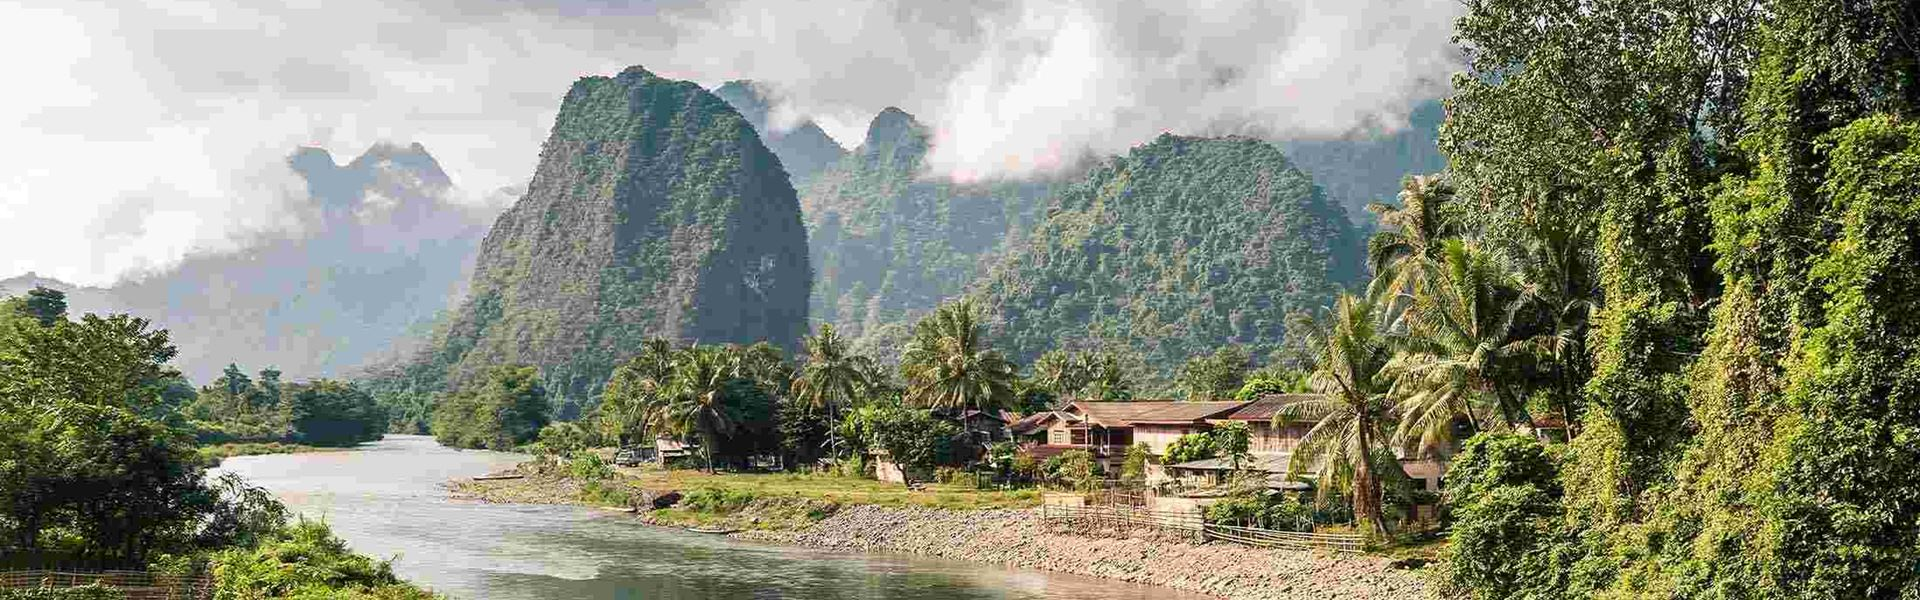 Asiatica Travel Kundenbewertung vietnam laos reisen